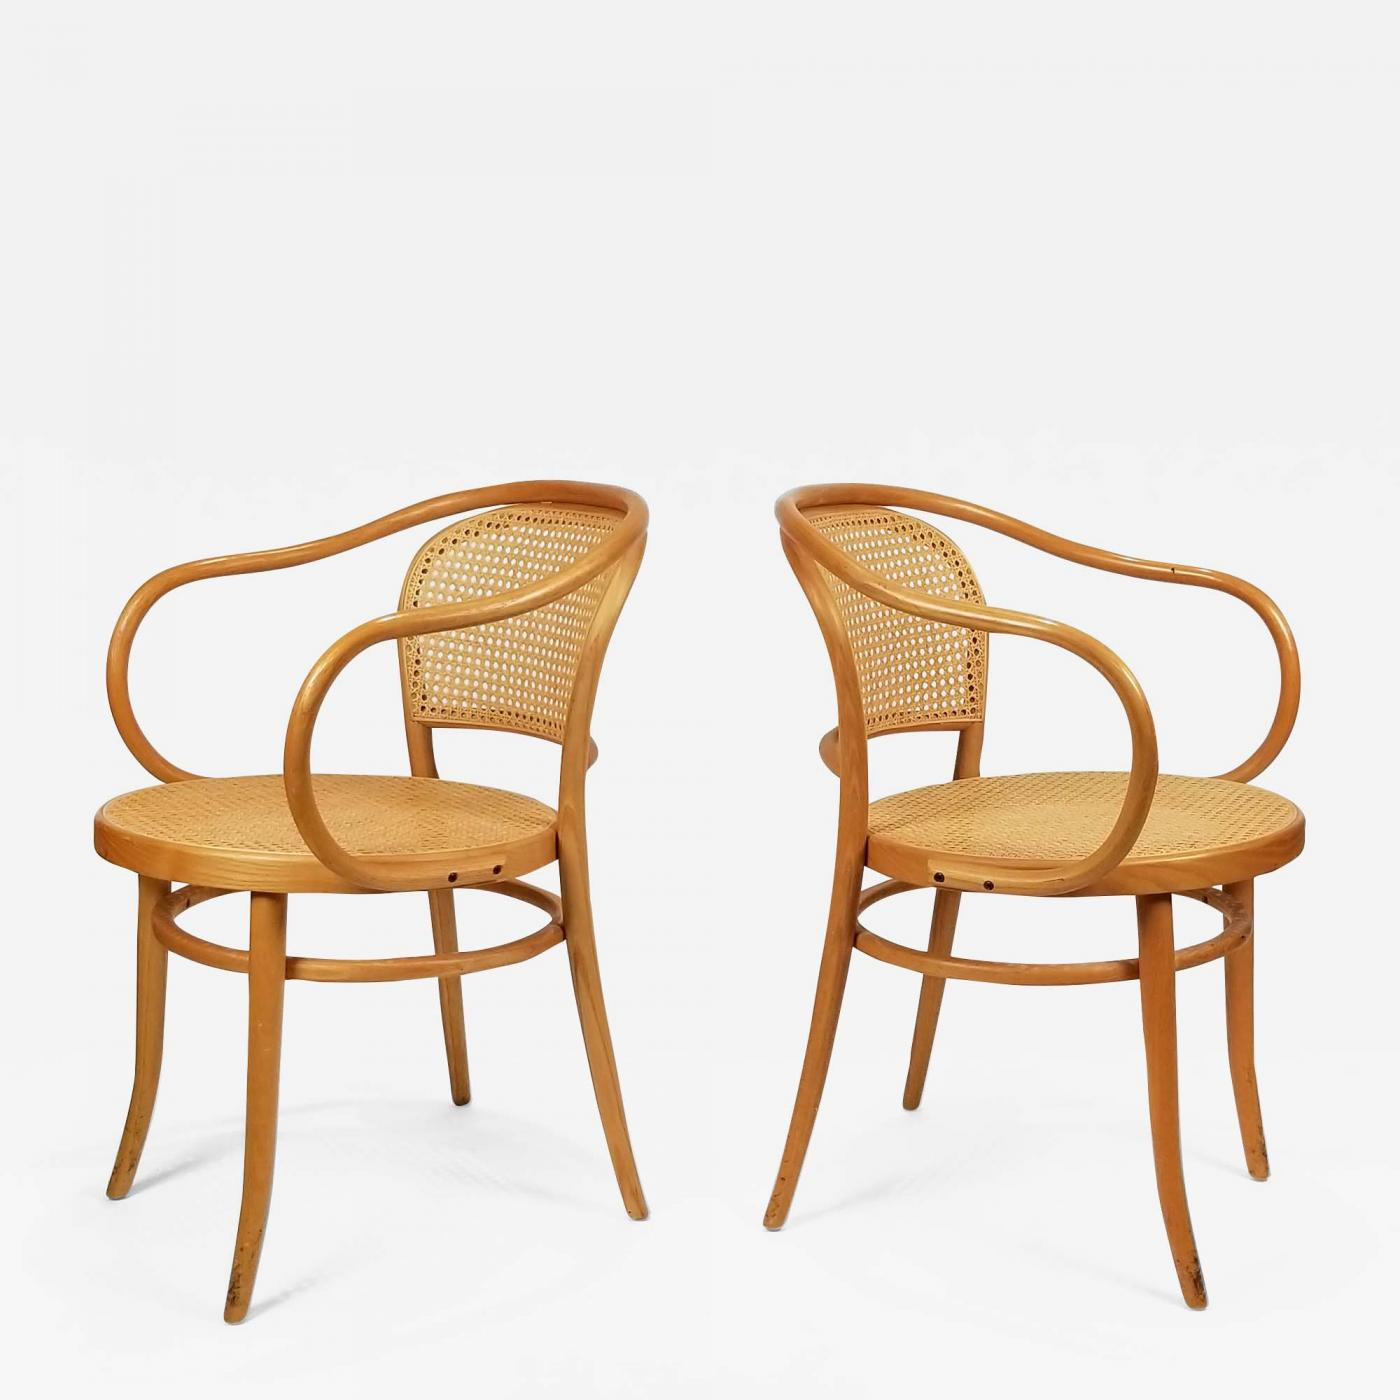 Thonet Michael Michael Thonet Pair Of Michael Thonet Solid Beechwood And Cane No 209 Armchairs